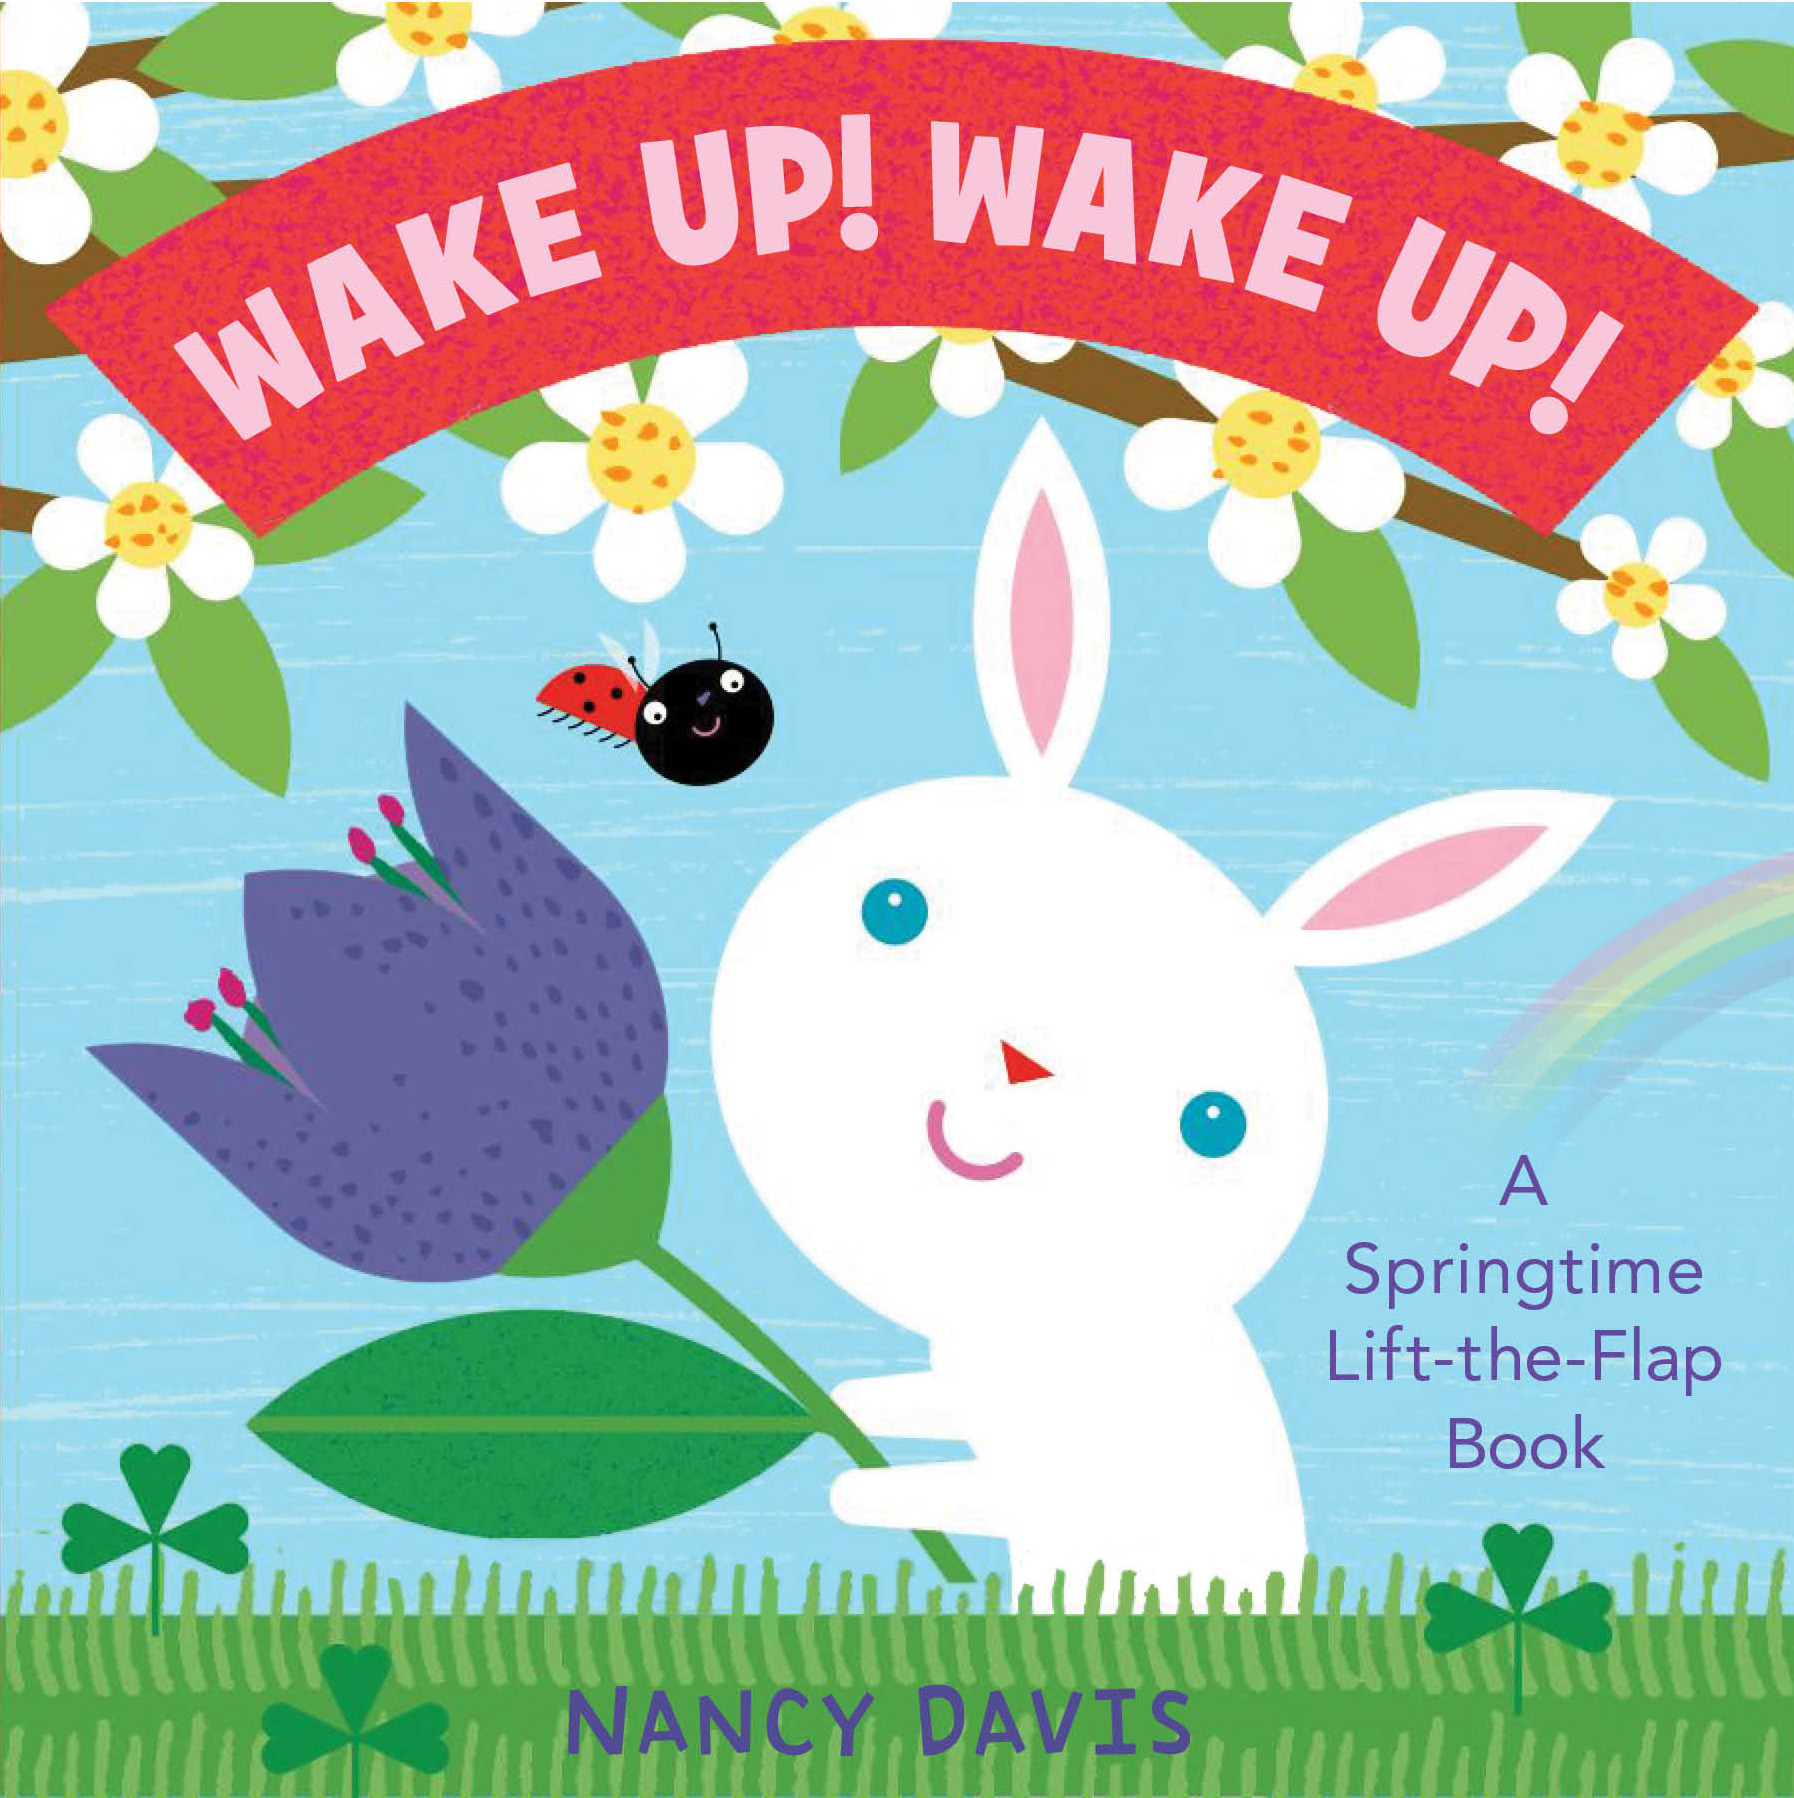 Wake Up! Wake Up! | Book by Kathryn Lynn Davis | Official ...